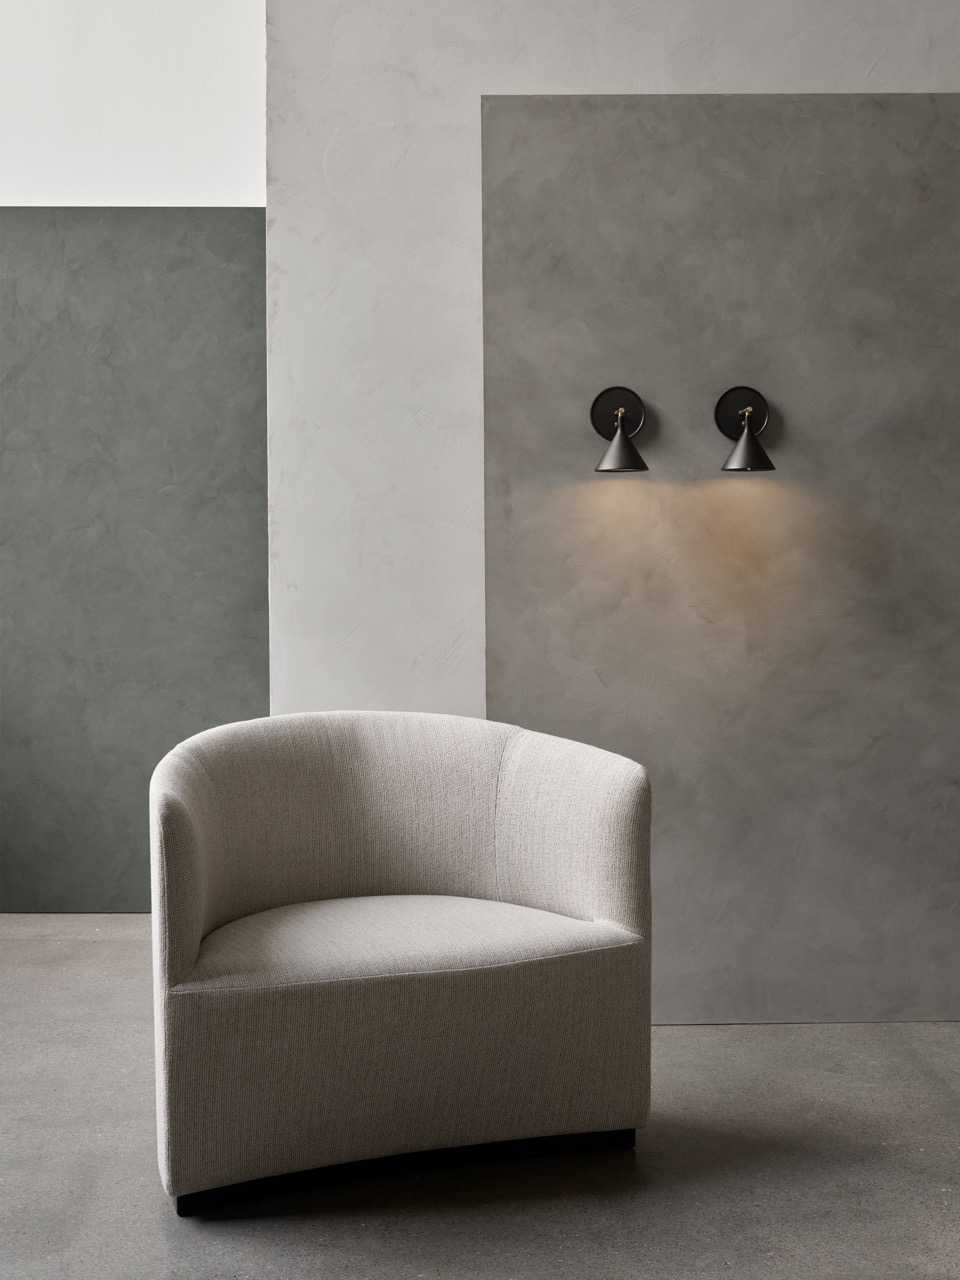 'Tearoom' armchair with the new cast sconce in the background.